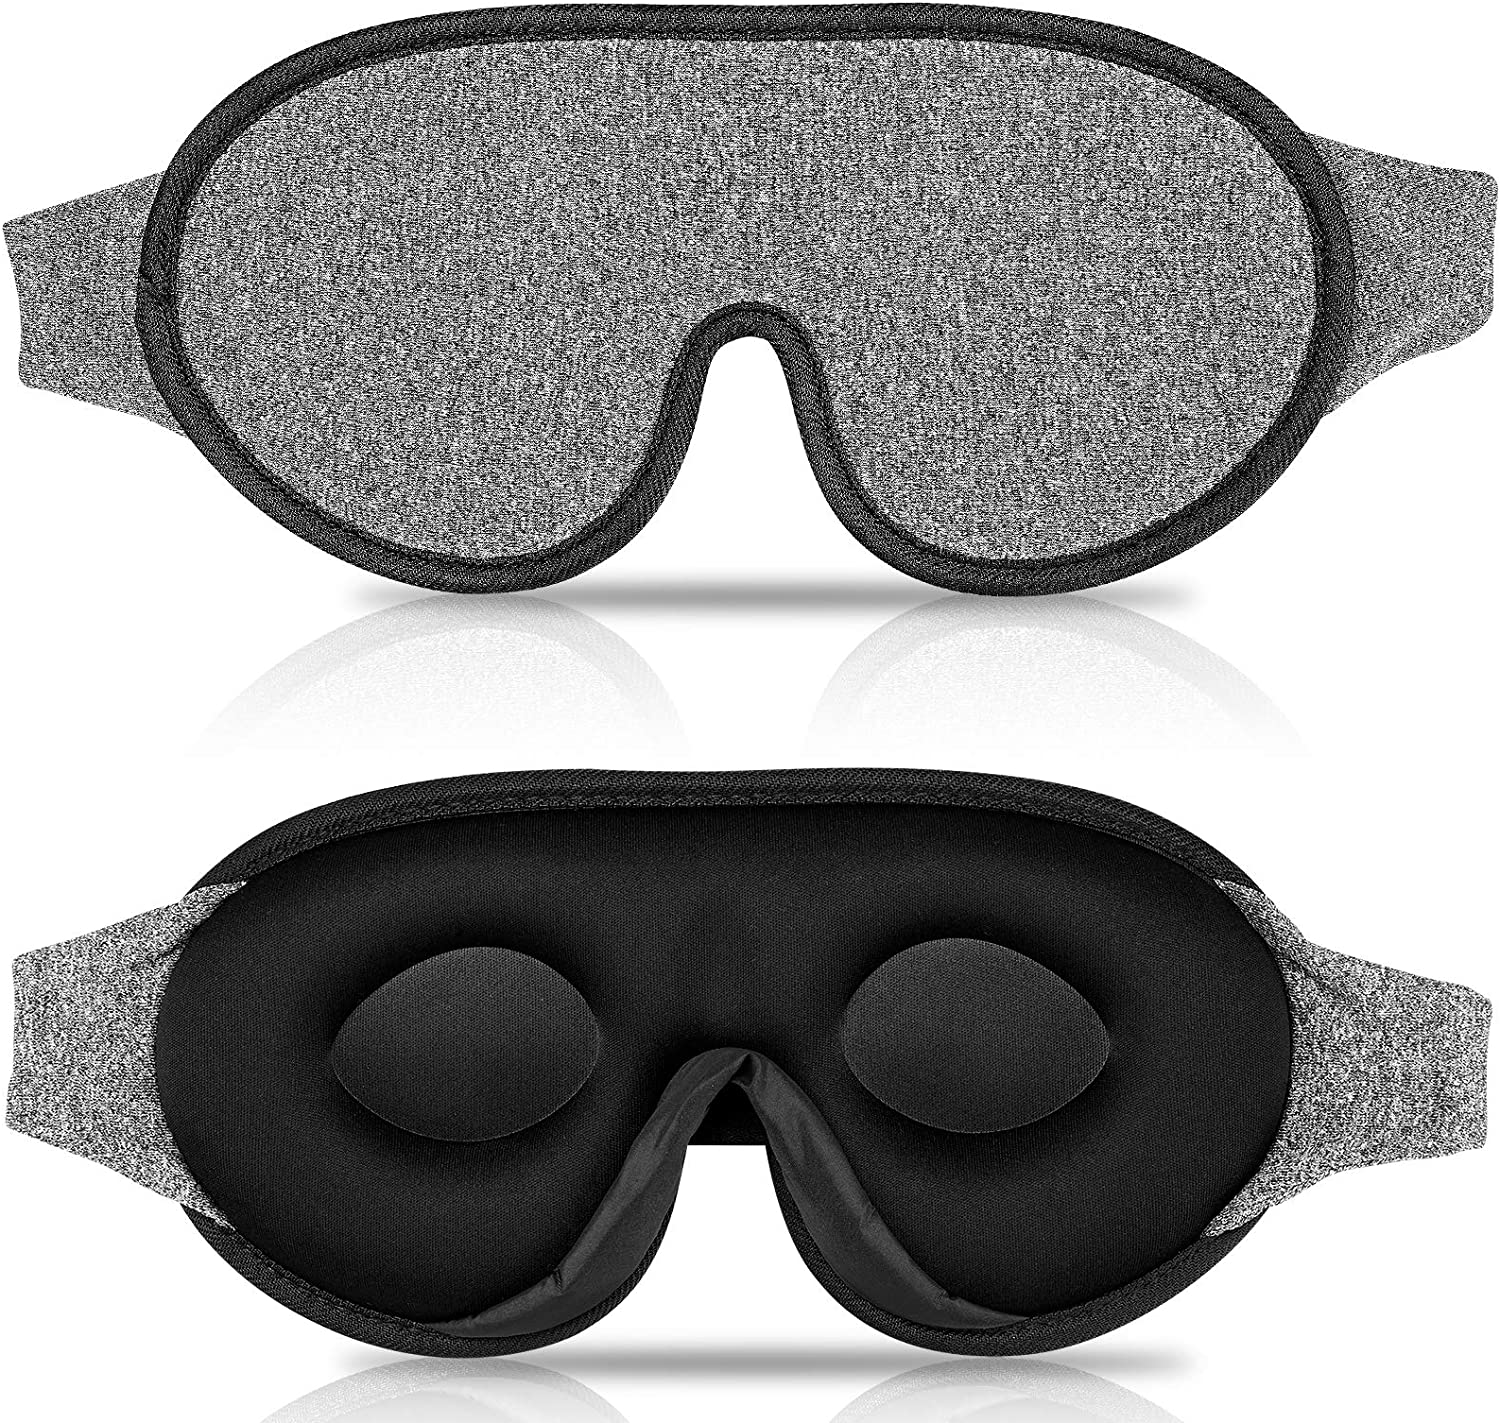 Black and gray sleep mask from two angles